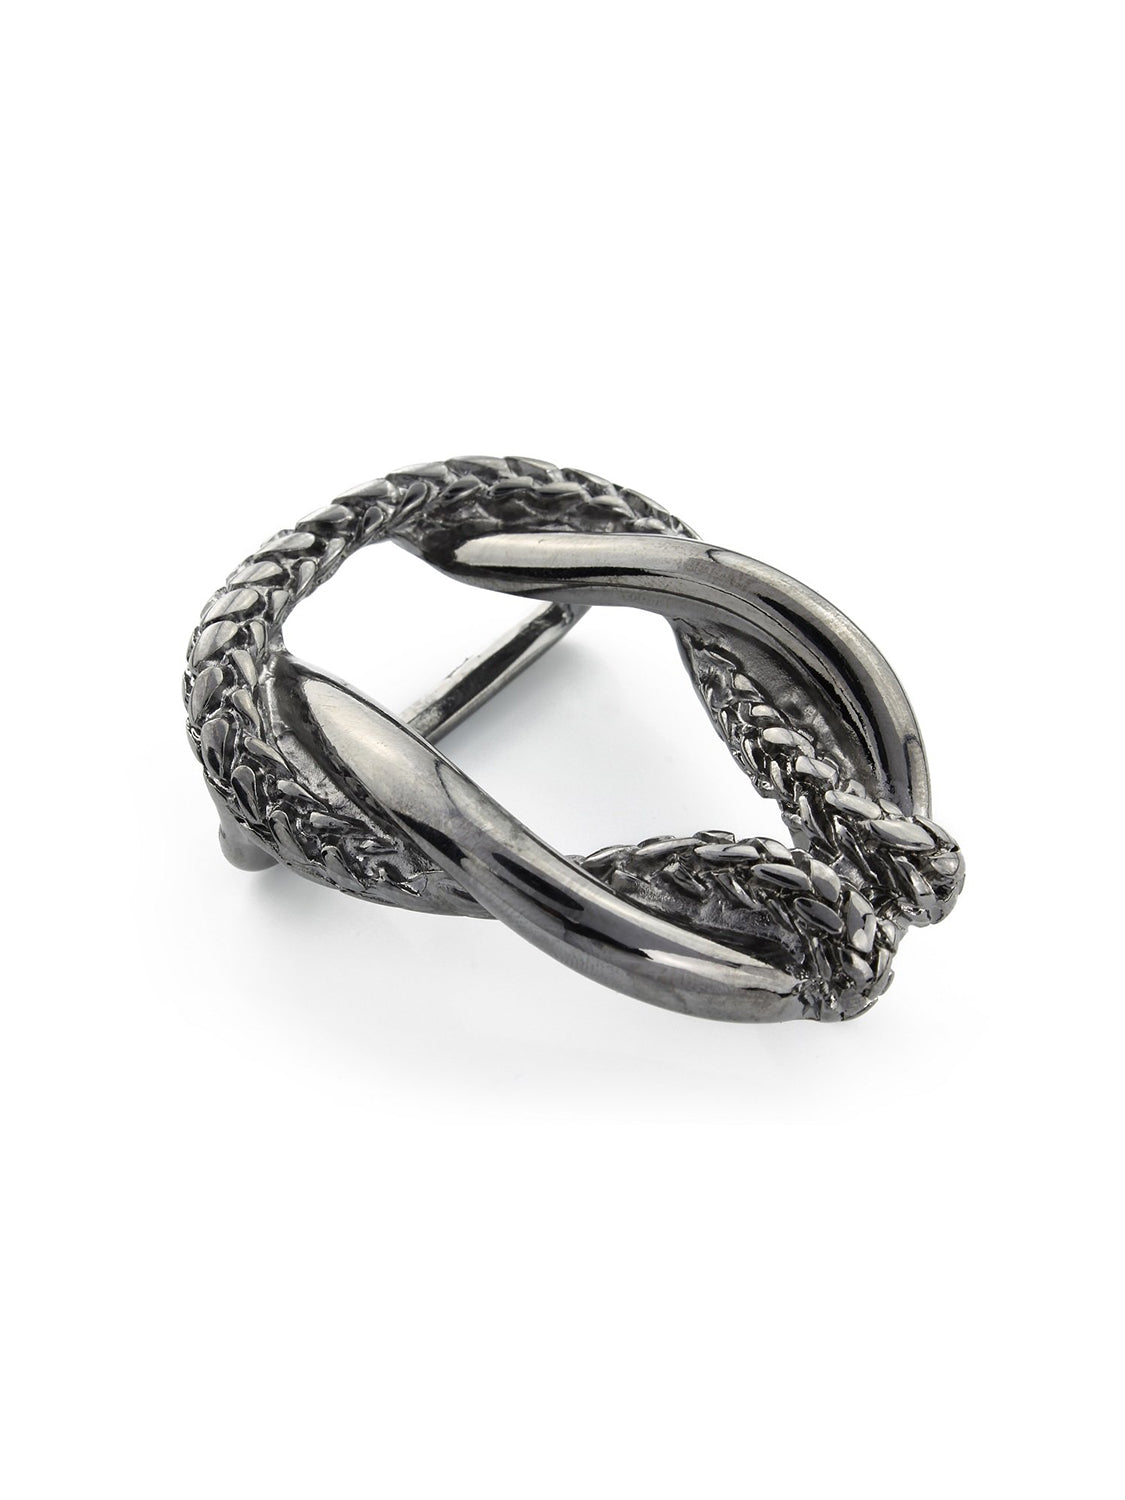 Elliot Rhodes Gunmetal Rope Buckle (Gun metal) - Union 22